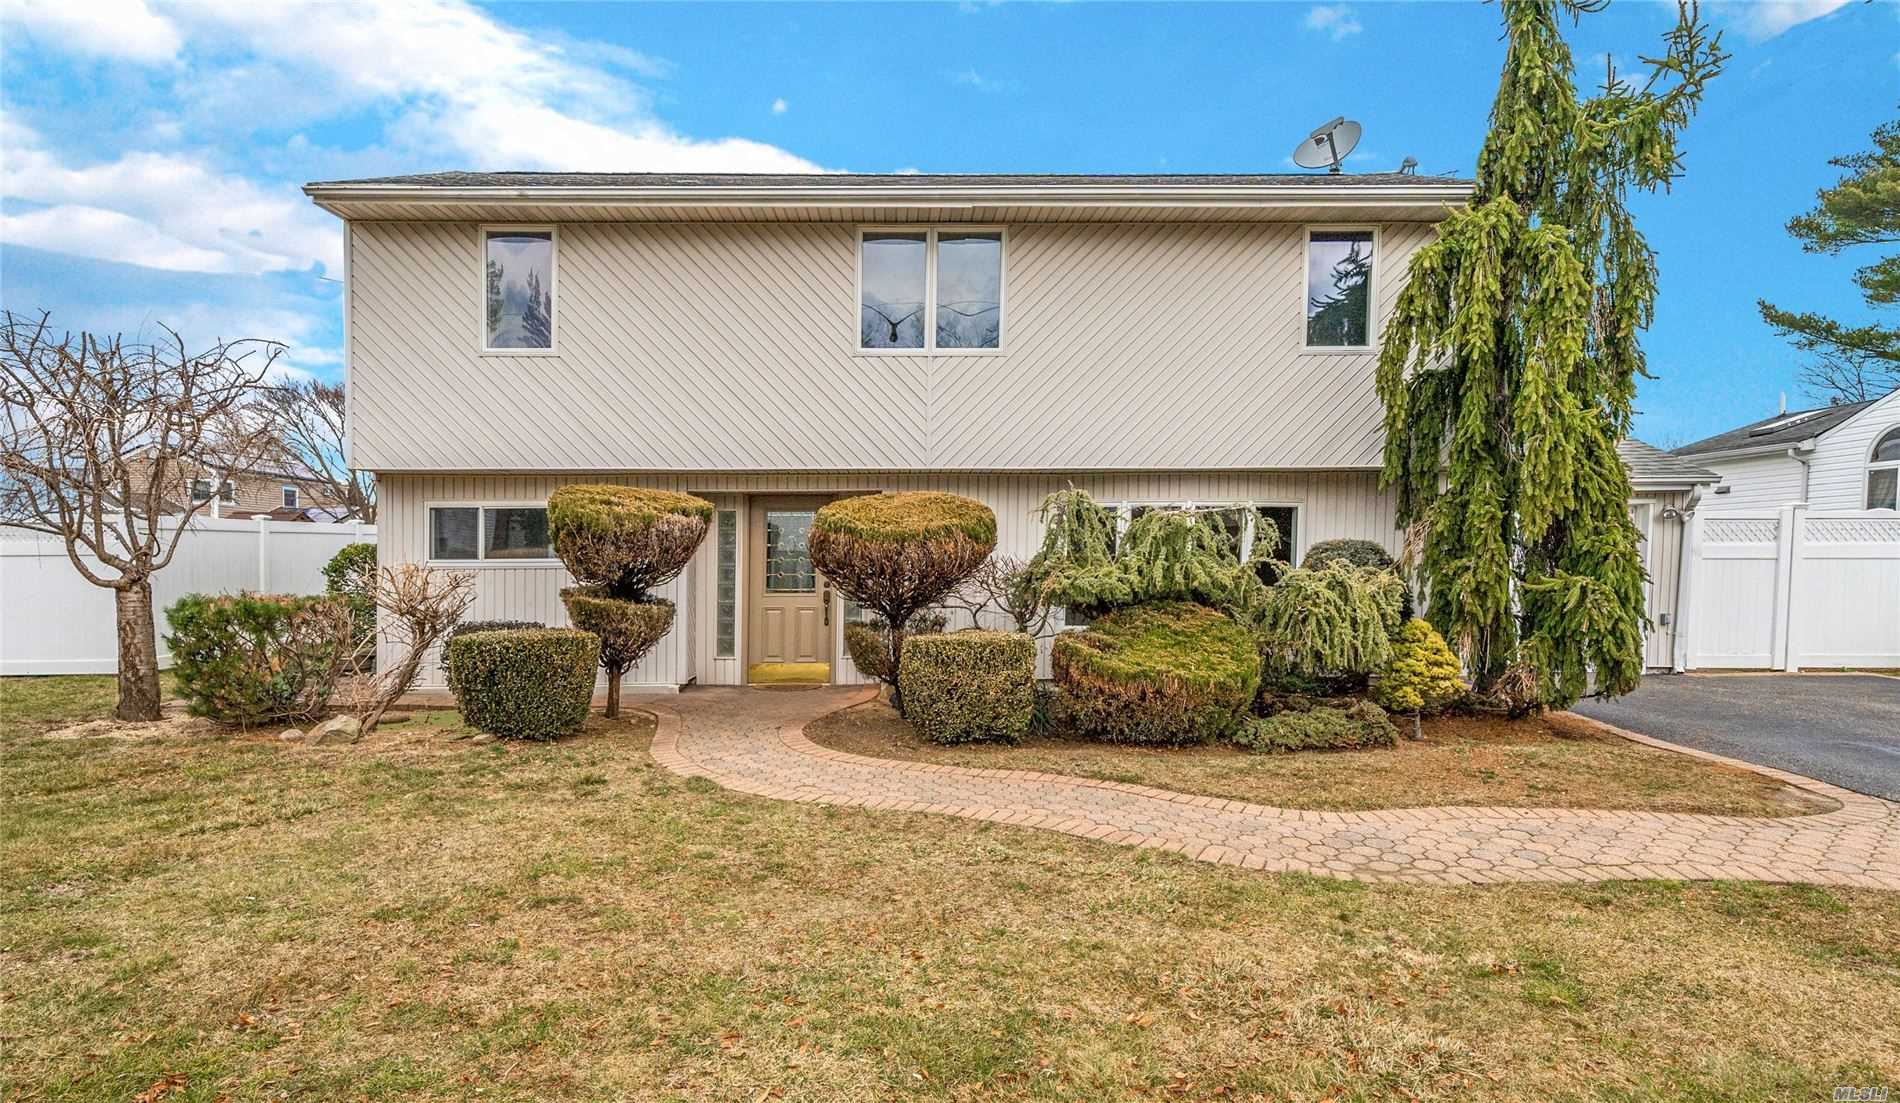 309 N Utica Ave 11758 - One of Massapequa Homes for Sale